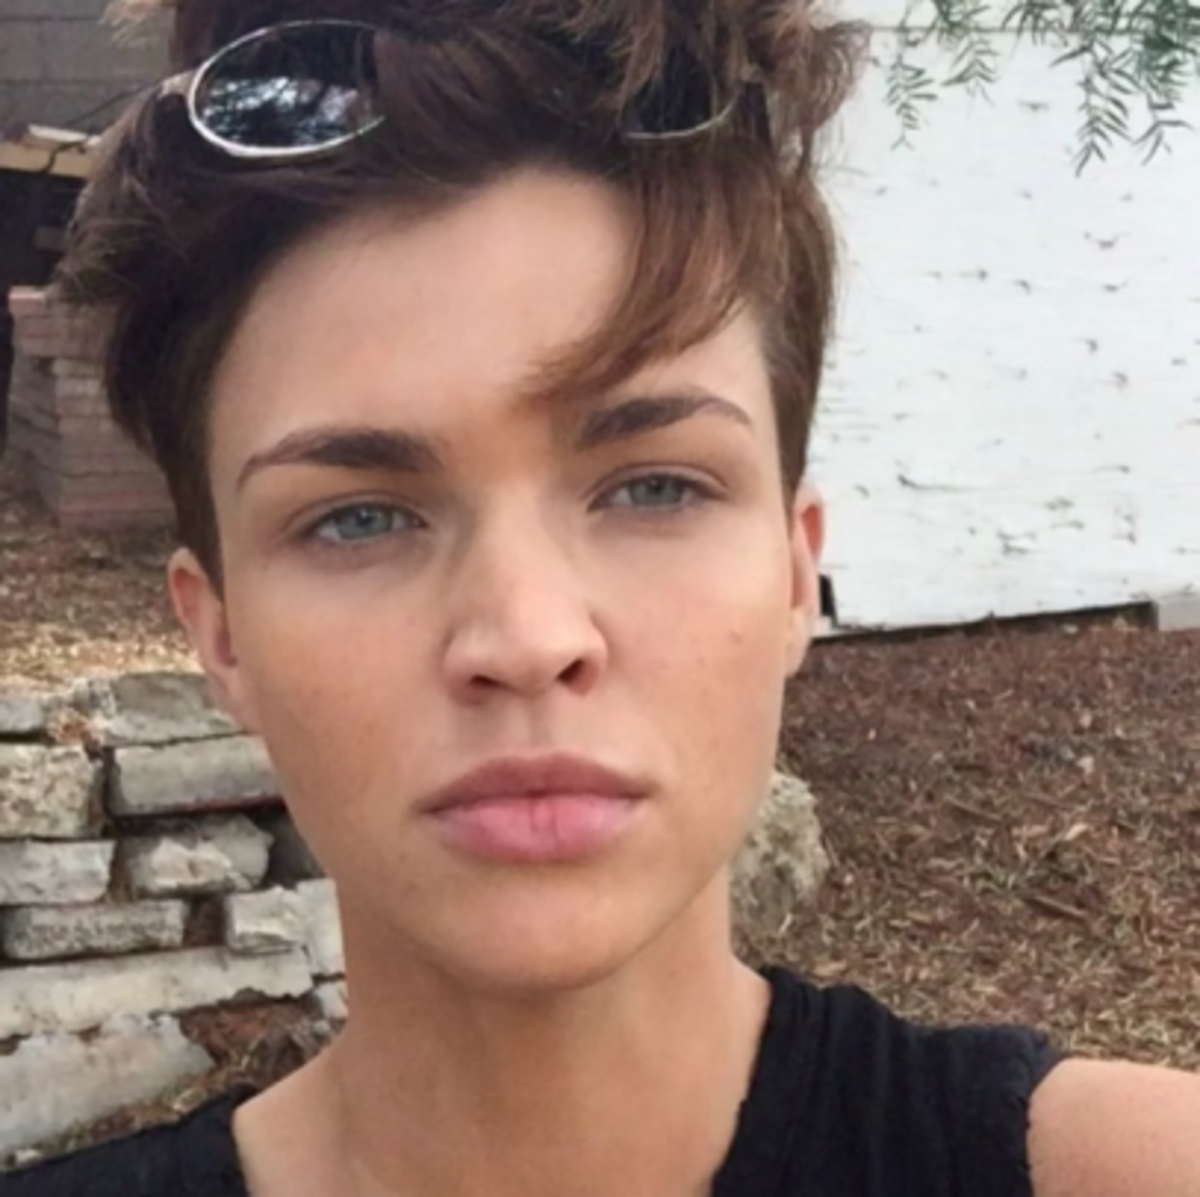 Famous Actors Without Tattoos: Ruby Rose Removed Her Tattoos - Inked Celebrities